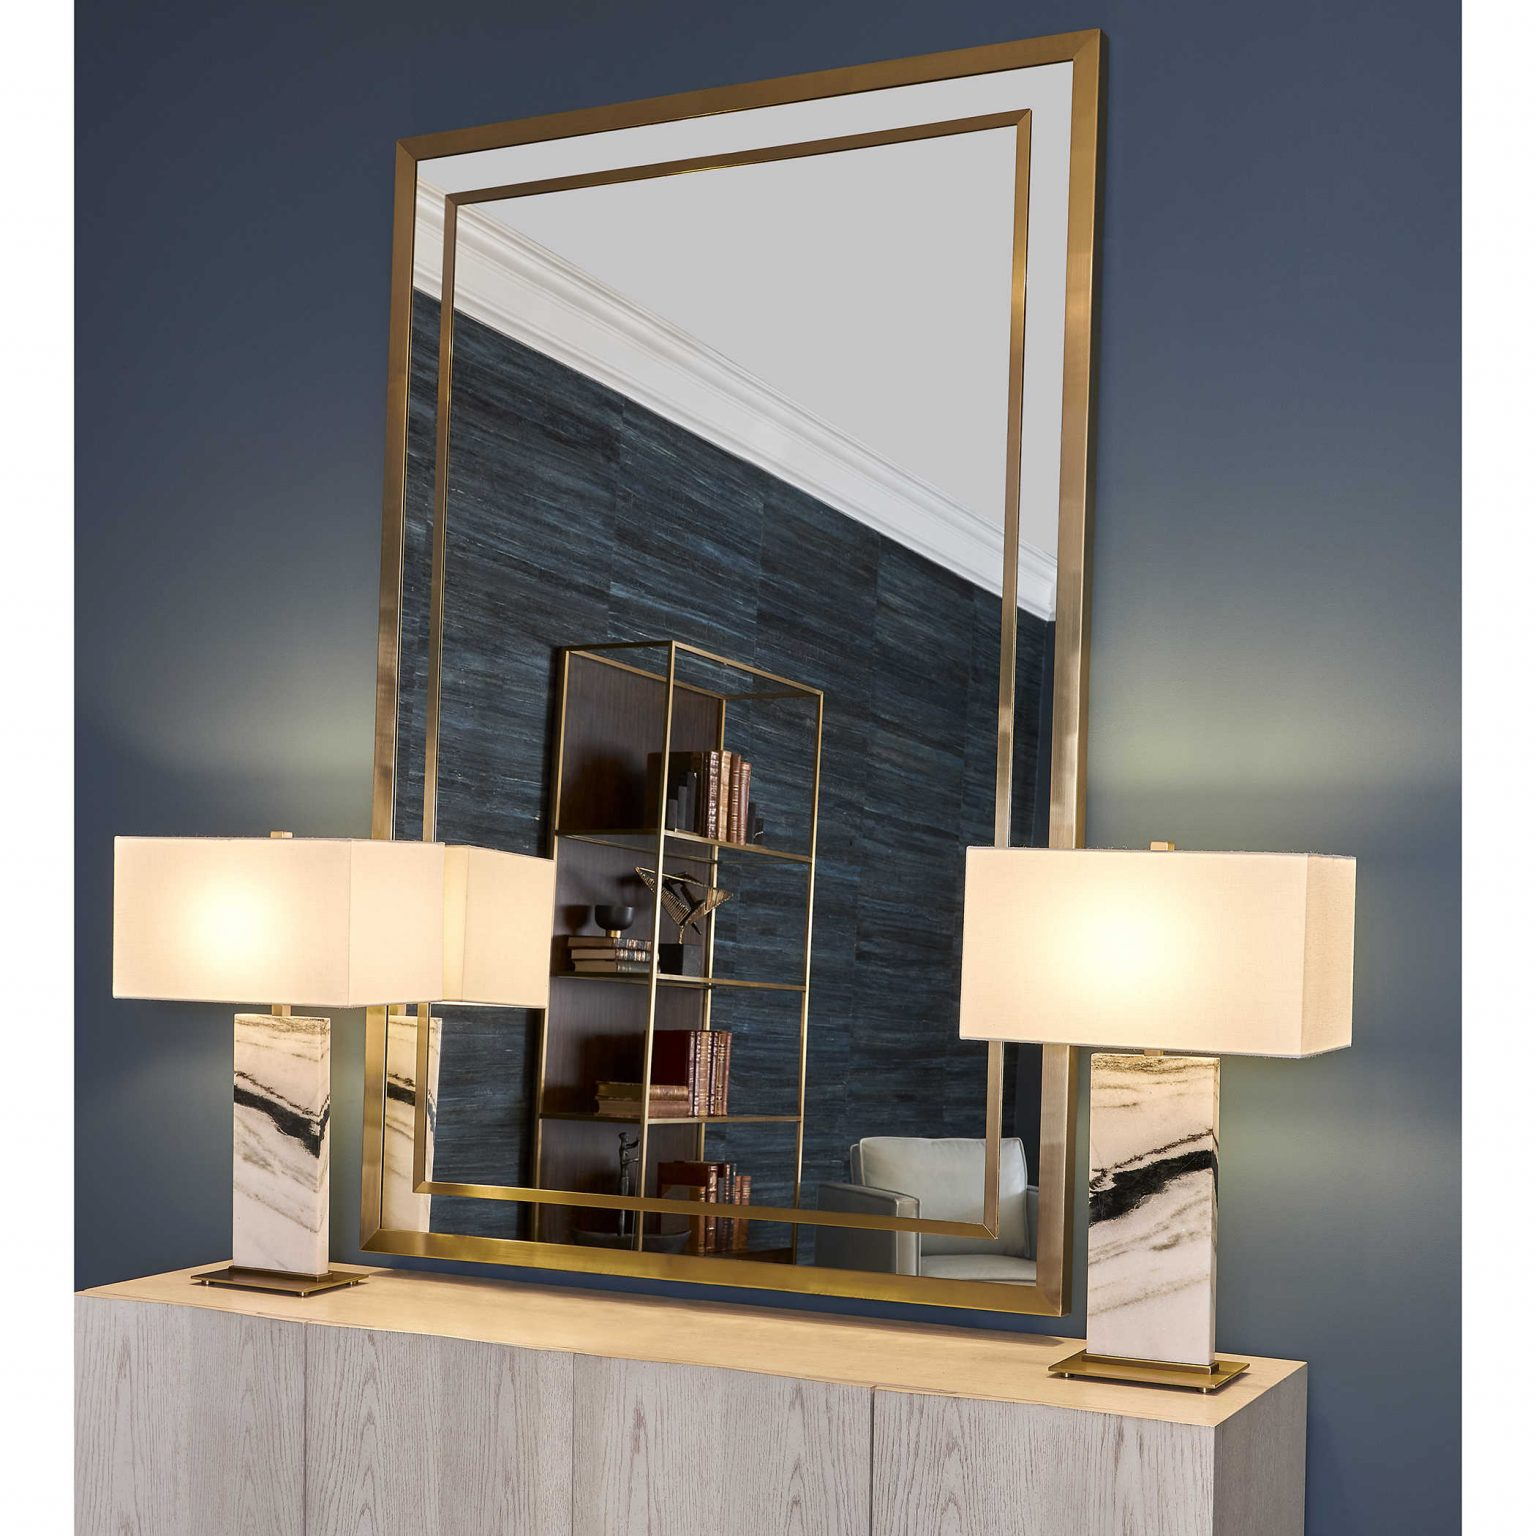 Gold lined mirrors with gold and lamps bring a retro-modern glow